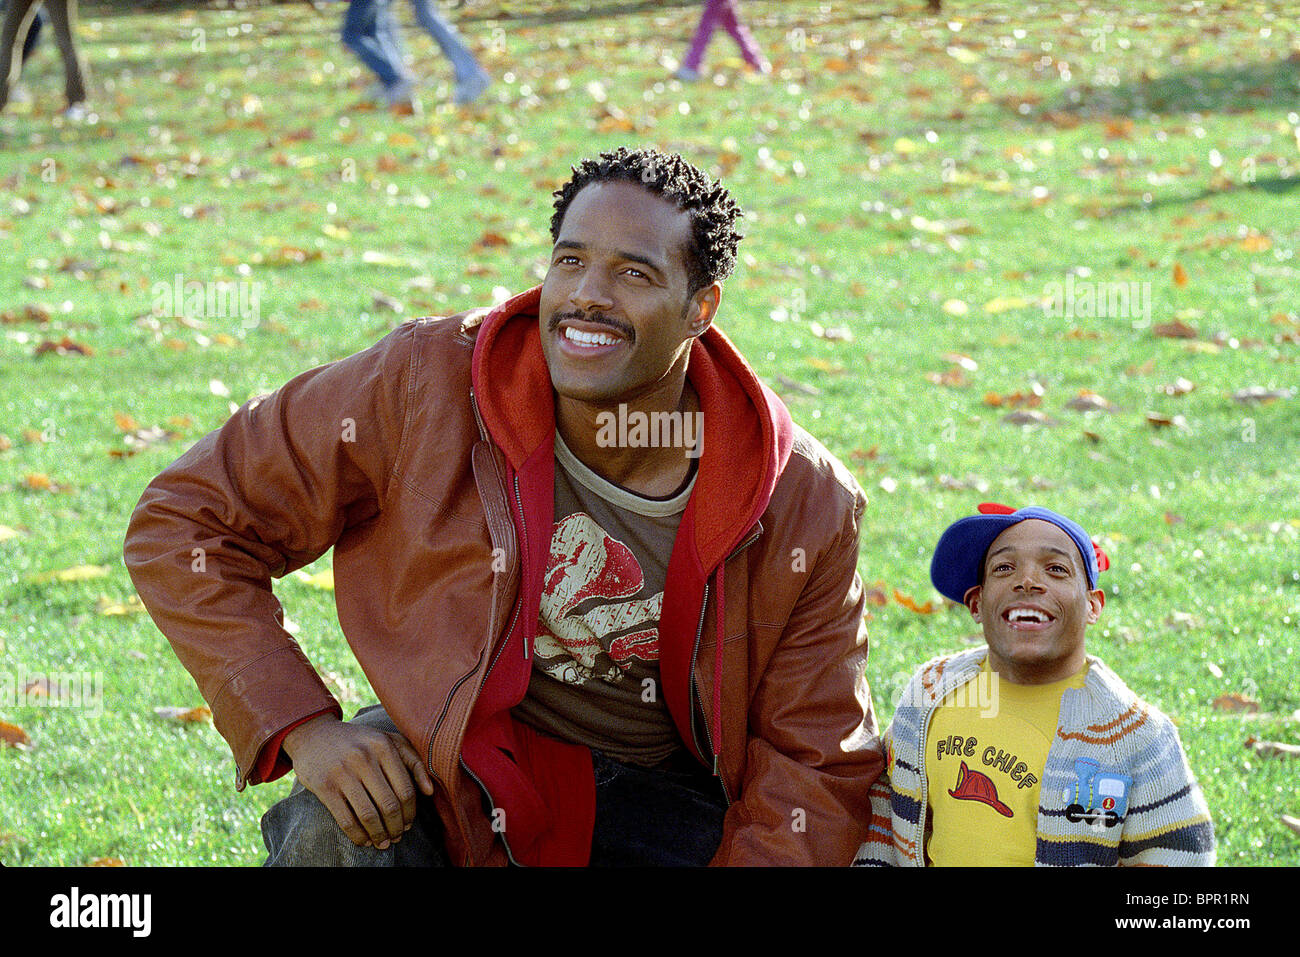 SHAWN WAYANS & MARLON WAYANS LITTLE MAN (2006 Stock Photo ...